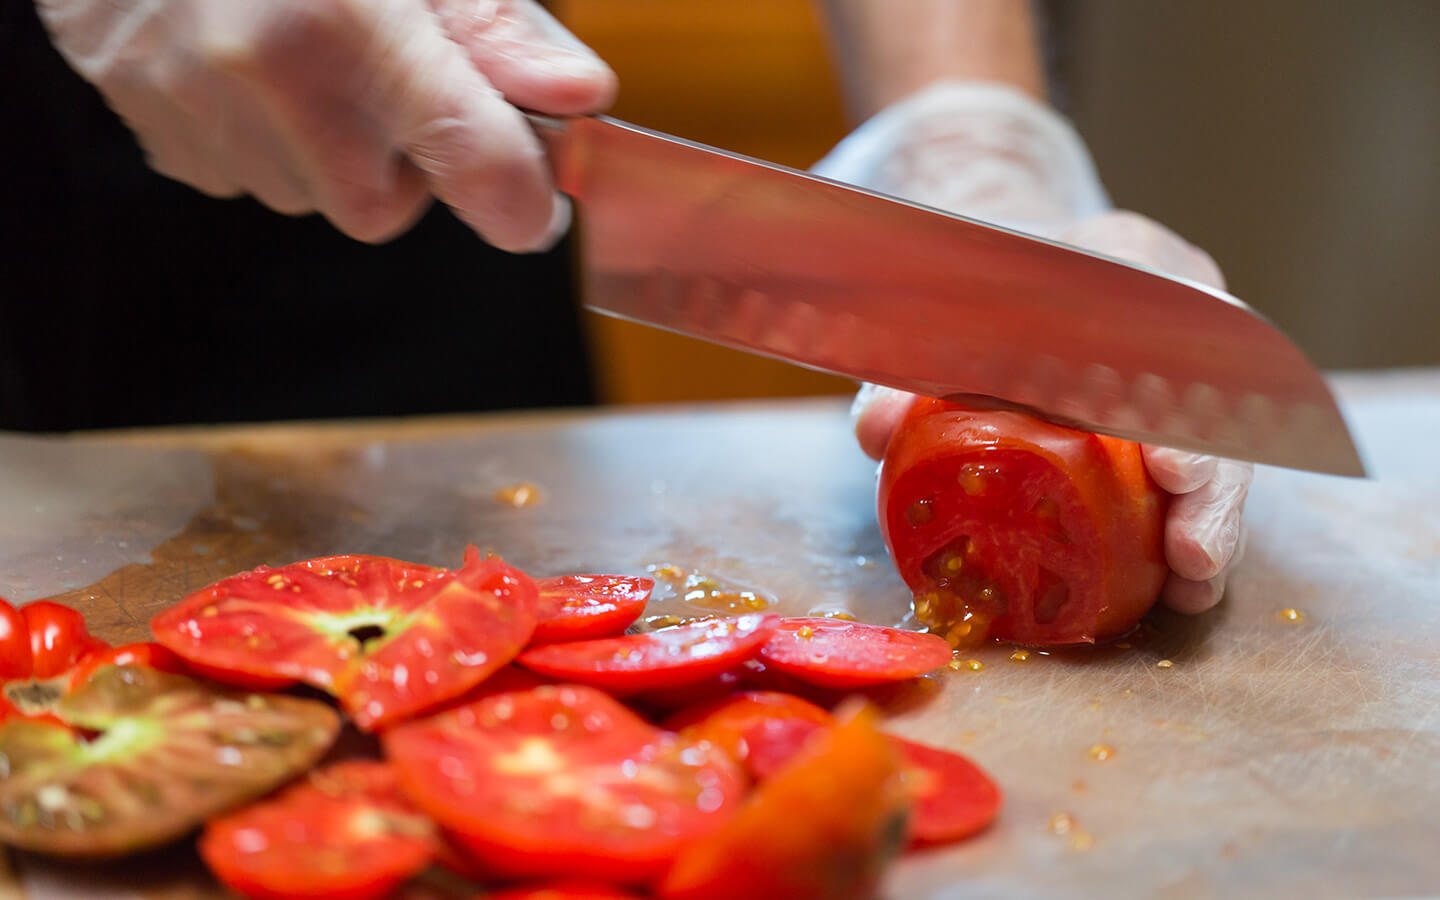 Chef slicing vegetables for an Italian cooking class in Kansas